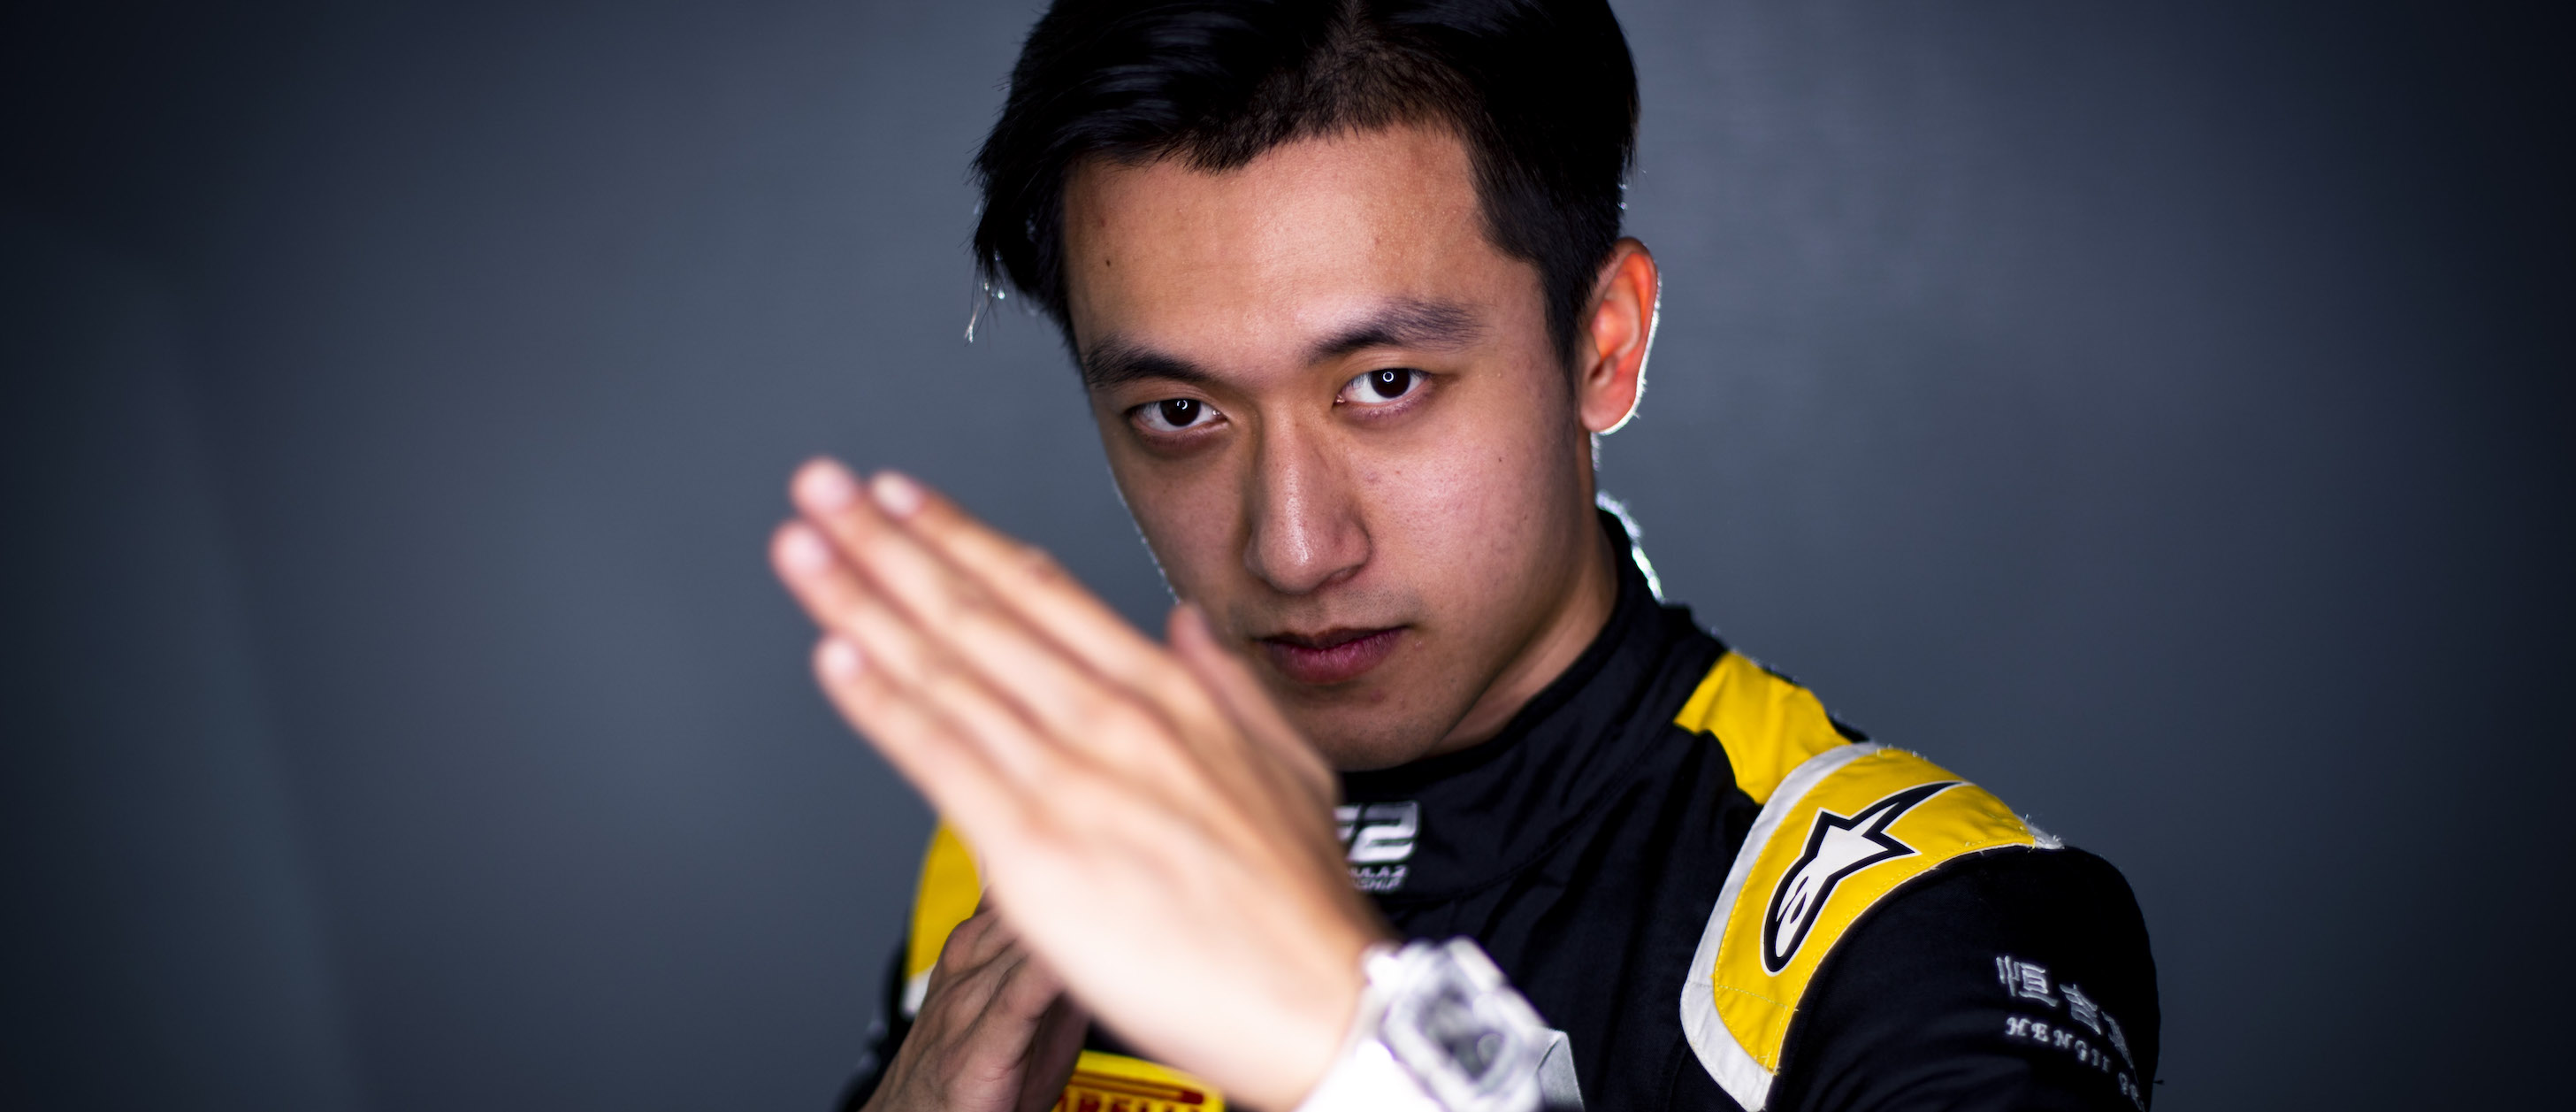 Formula 2 Star Guanyu Zhou Wins Inaugural Virtual Grand Prix!